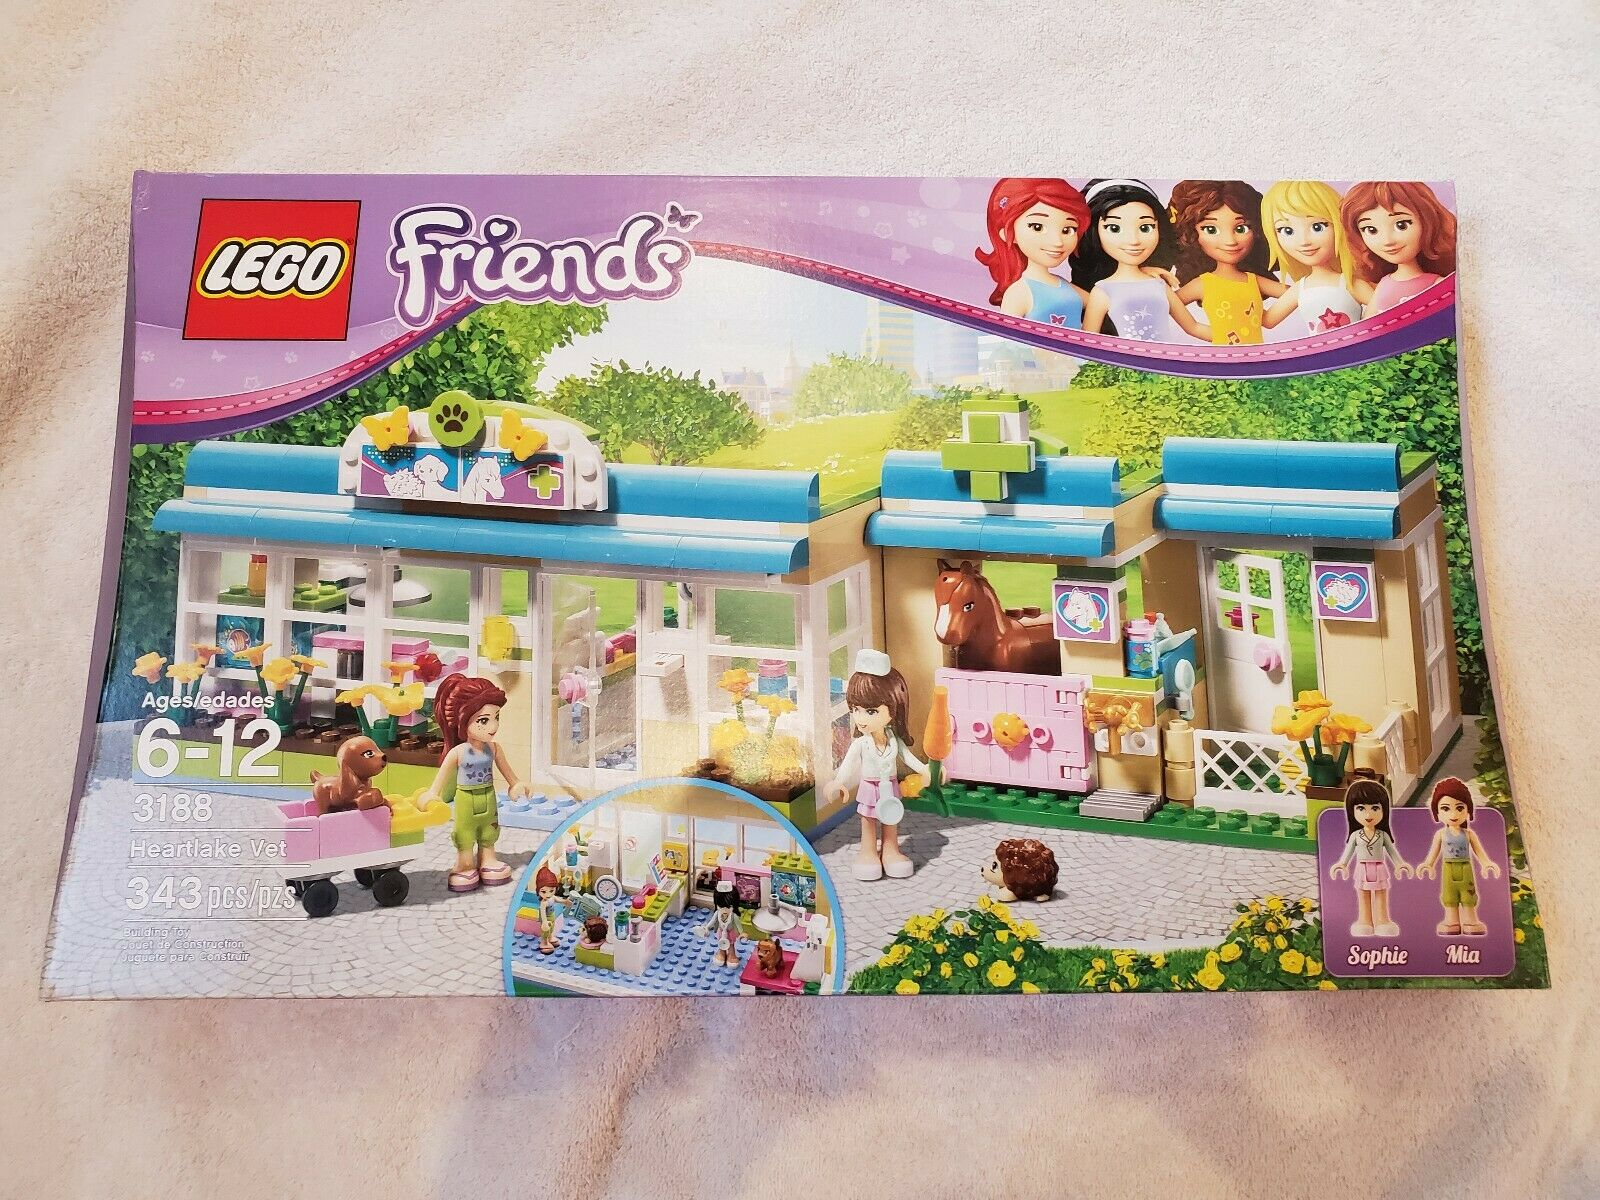 LEGO Friends Heartlake Vet 3188 NEW & Sealed great holiday gift for the kids